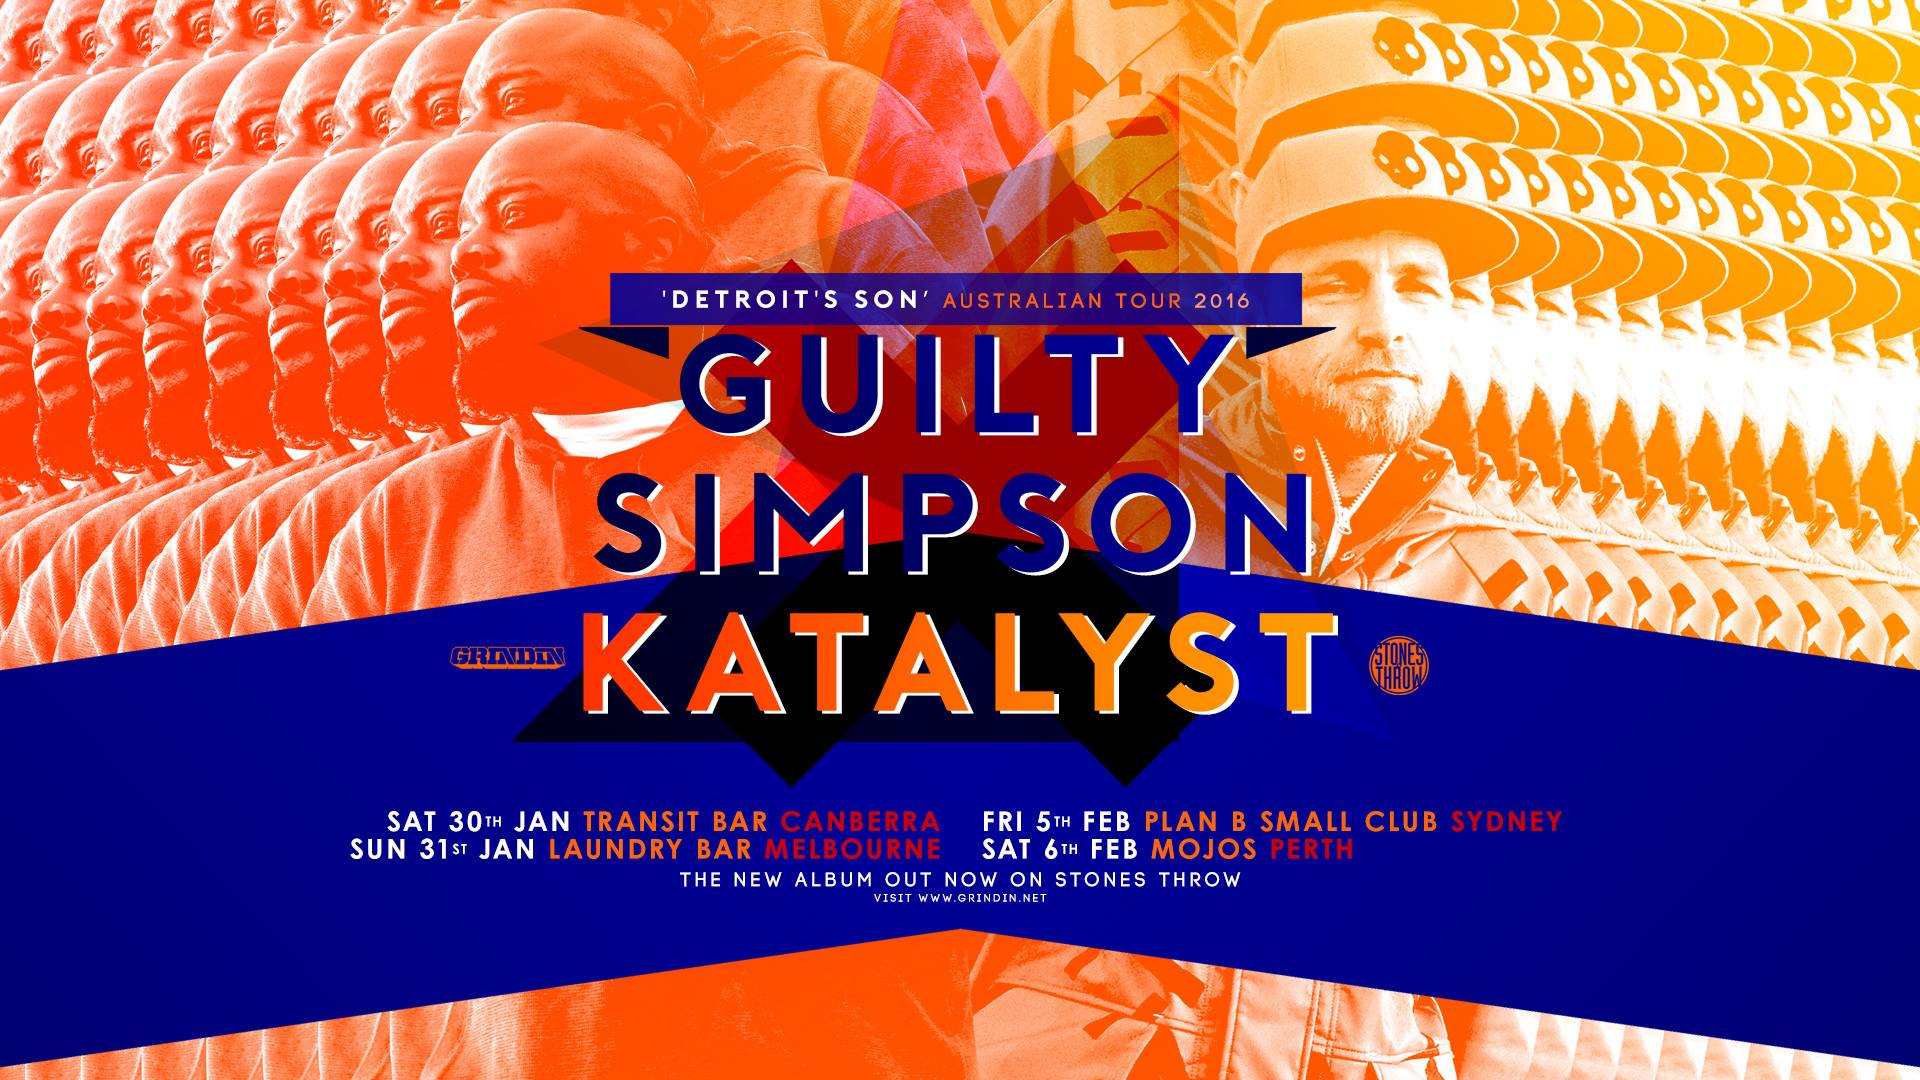 Guilty Simpson Australian Tour, Detroit's Son Interview